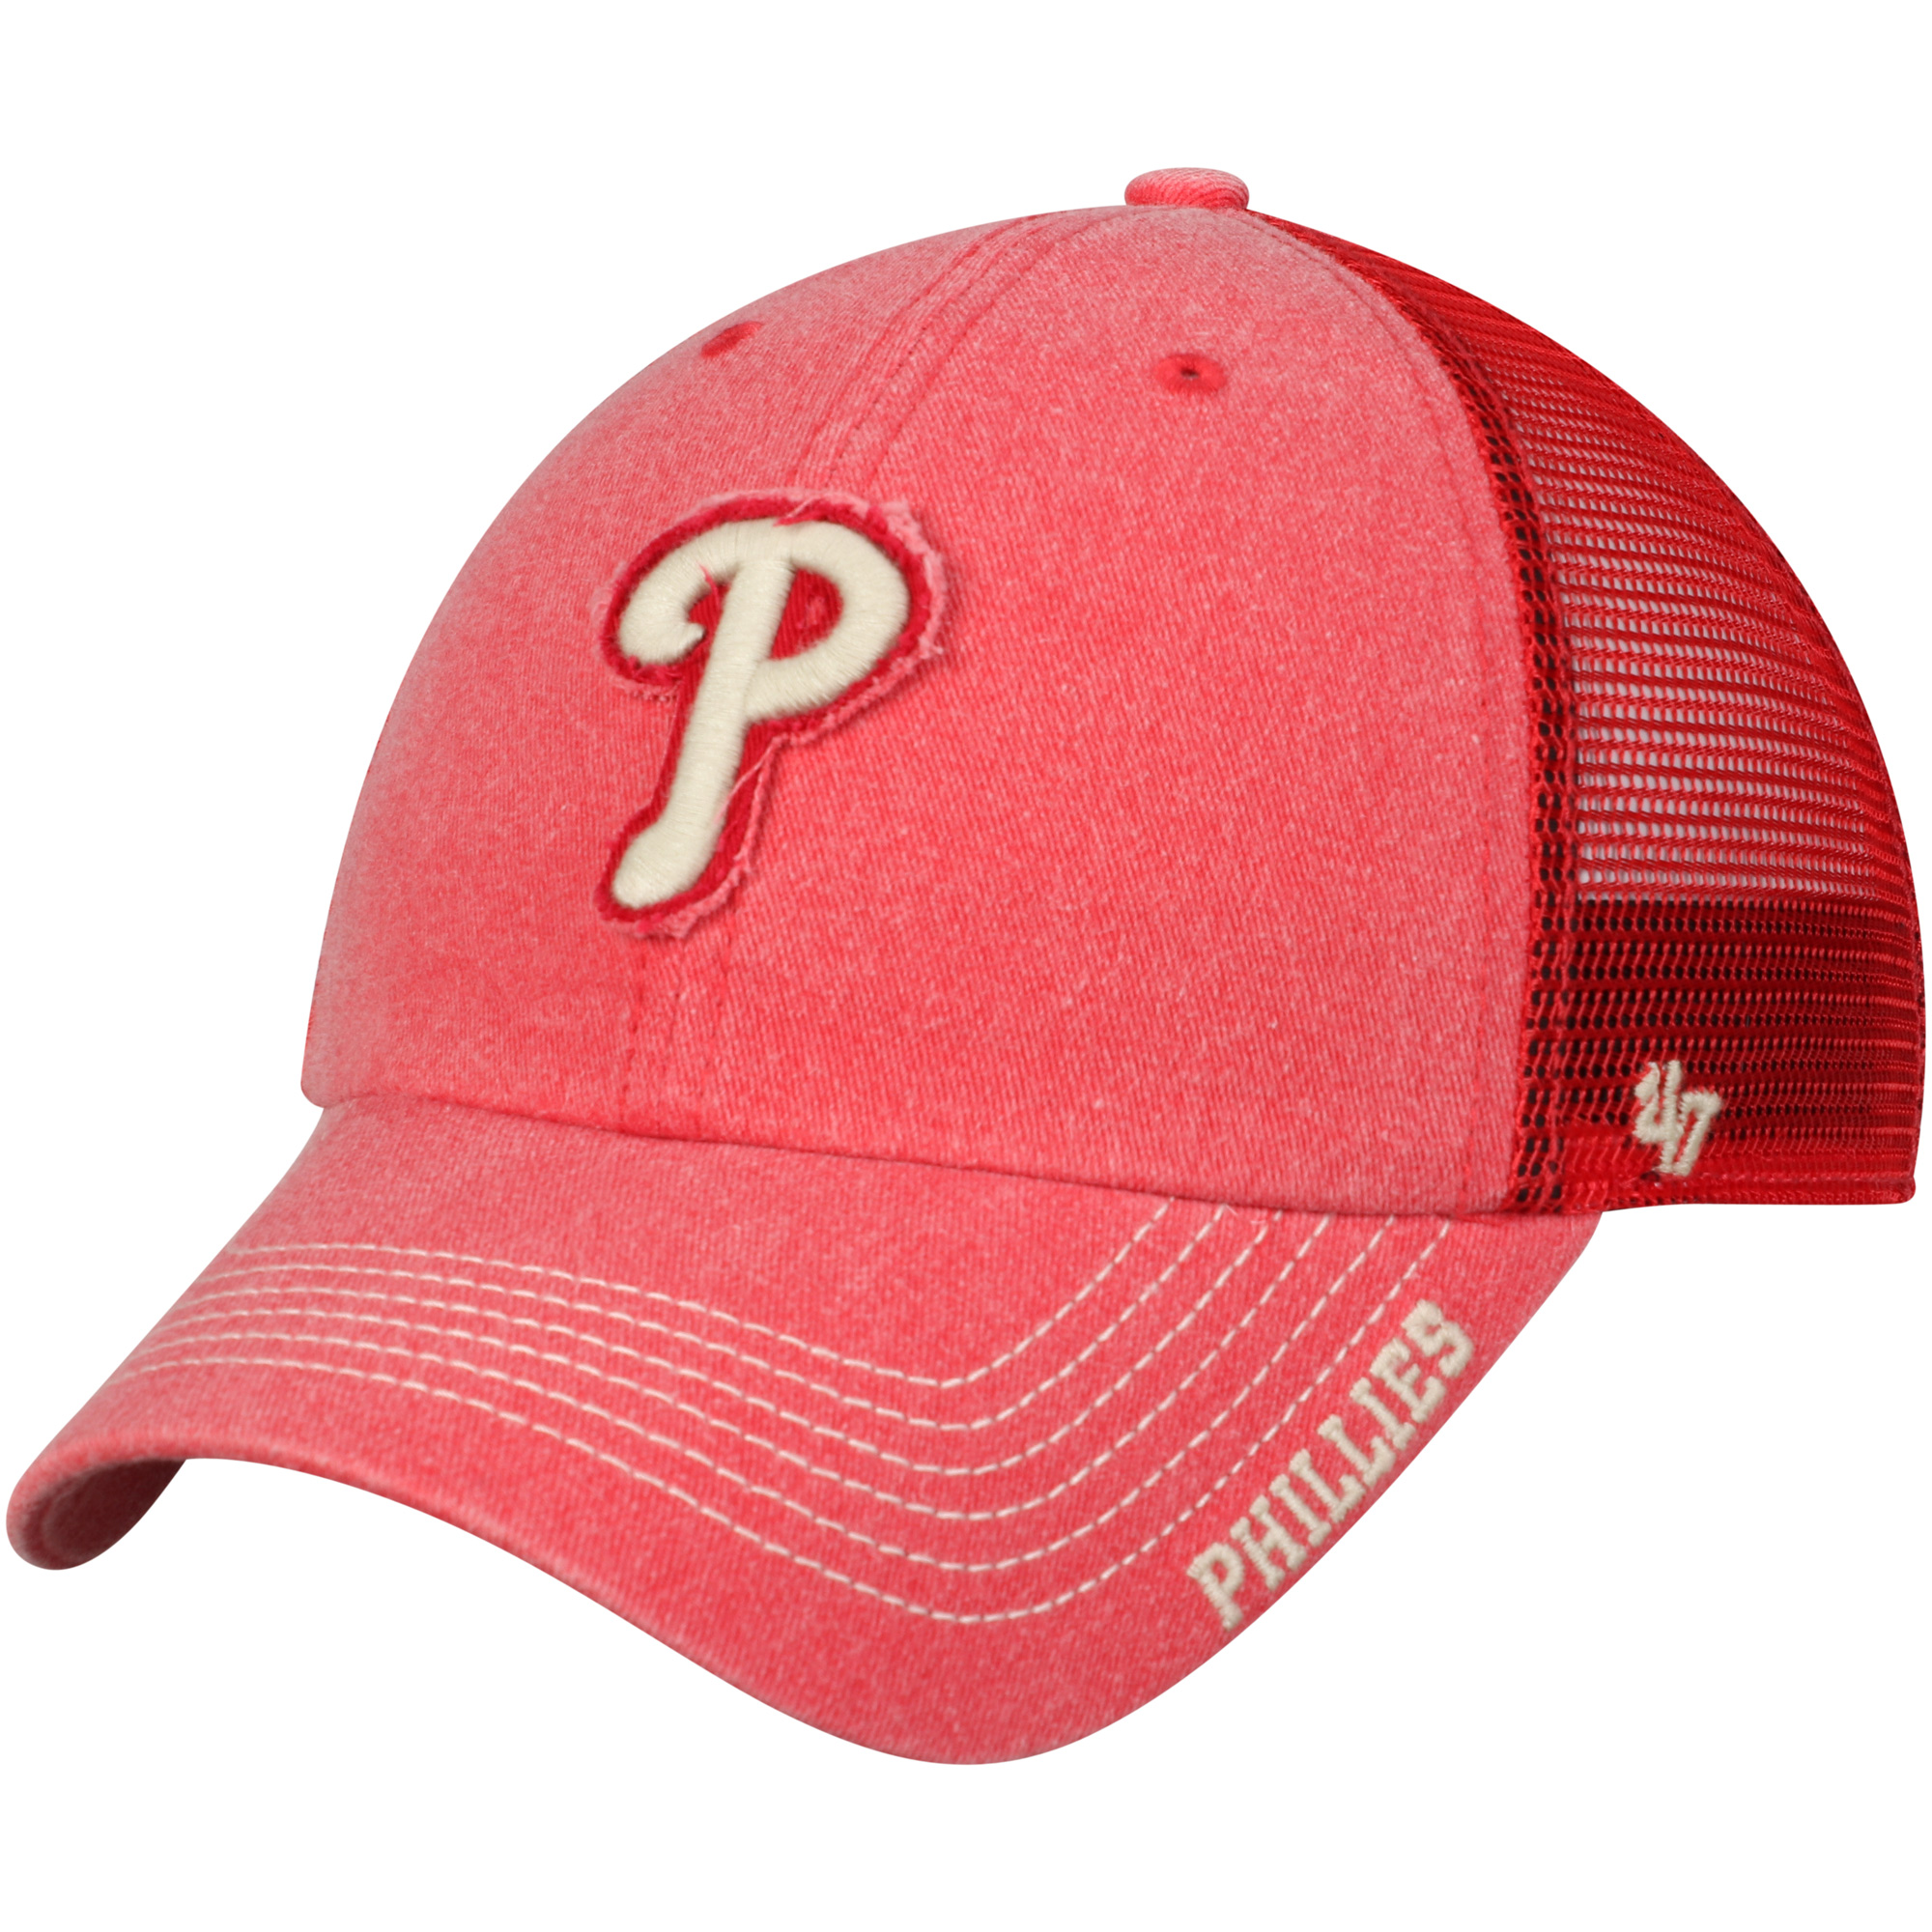 new product 57b9b 8c5ef ... canada philadelphia phillies 47 burnstead clean up trucker adjustable  hat red osfa 2dd3d 3975c